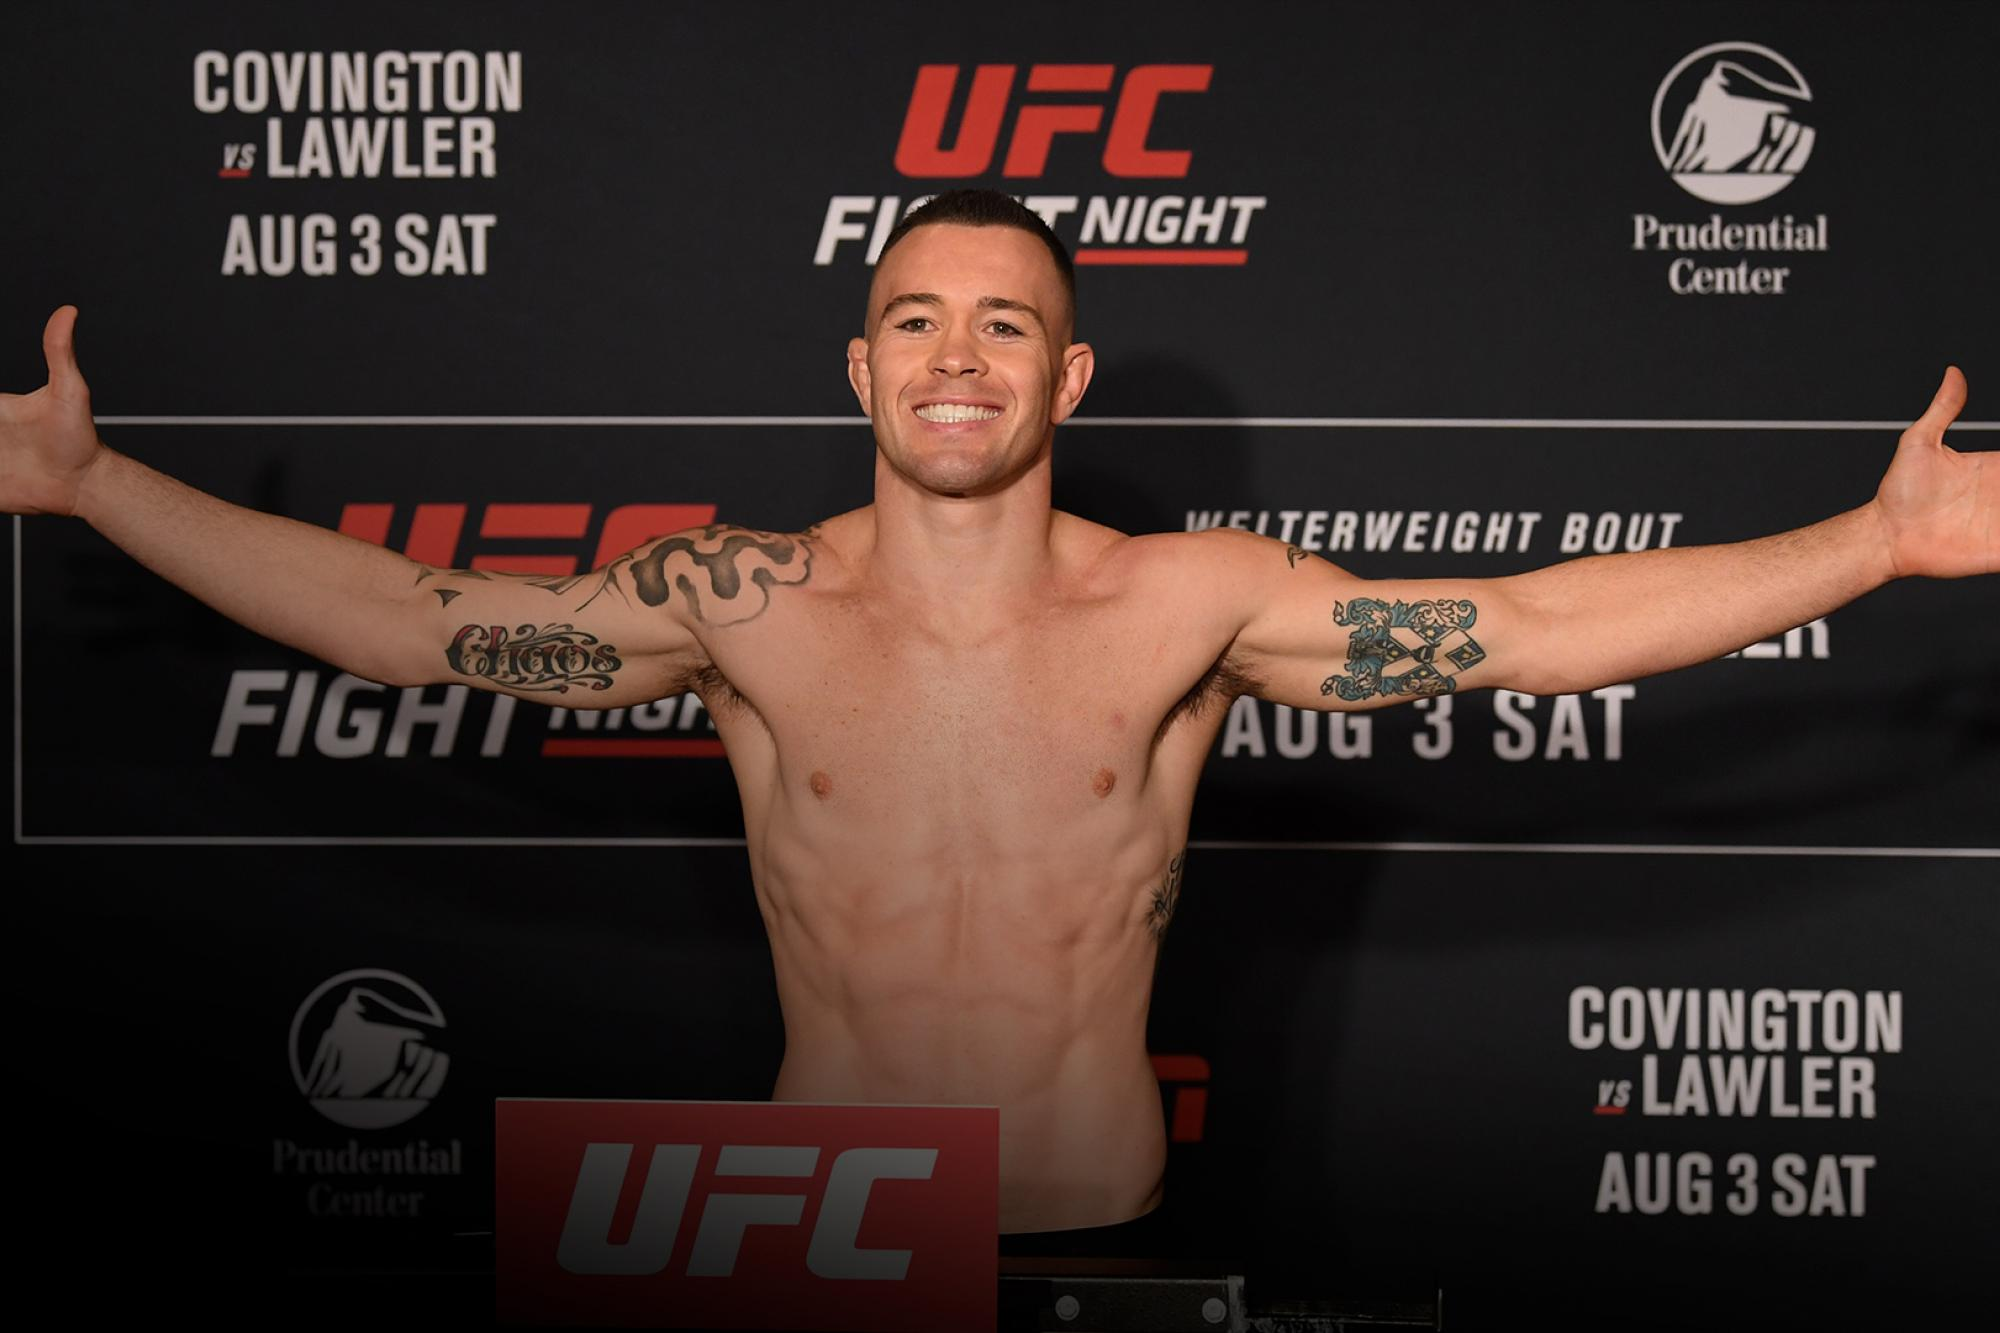 Colby Covington Showing His Worth | UFC